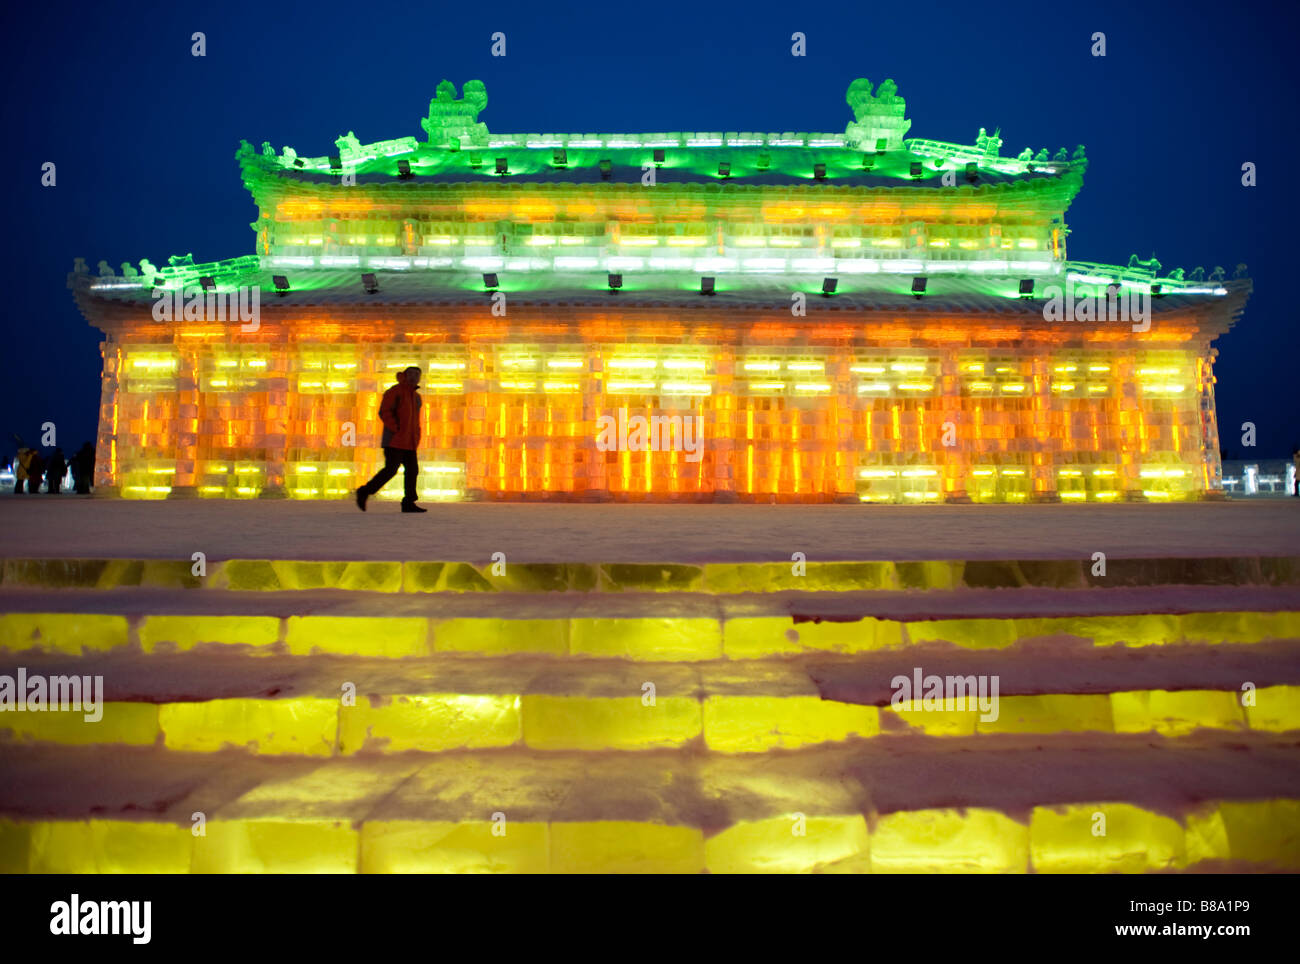 Spectacular illuminated ice sculptures at the Harbin Ice and Snow Festival in Heilongjiang Province China Stock Photo